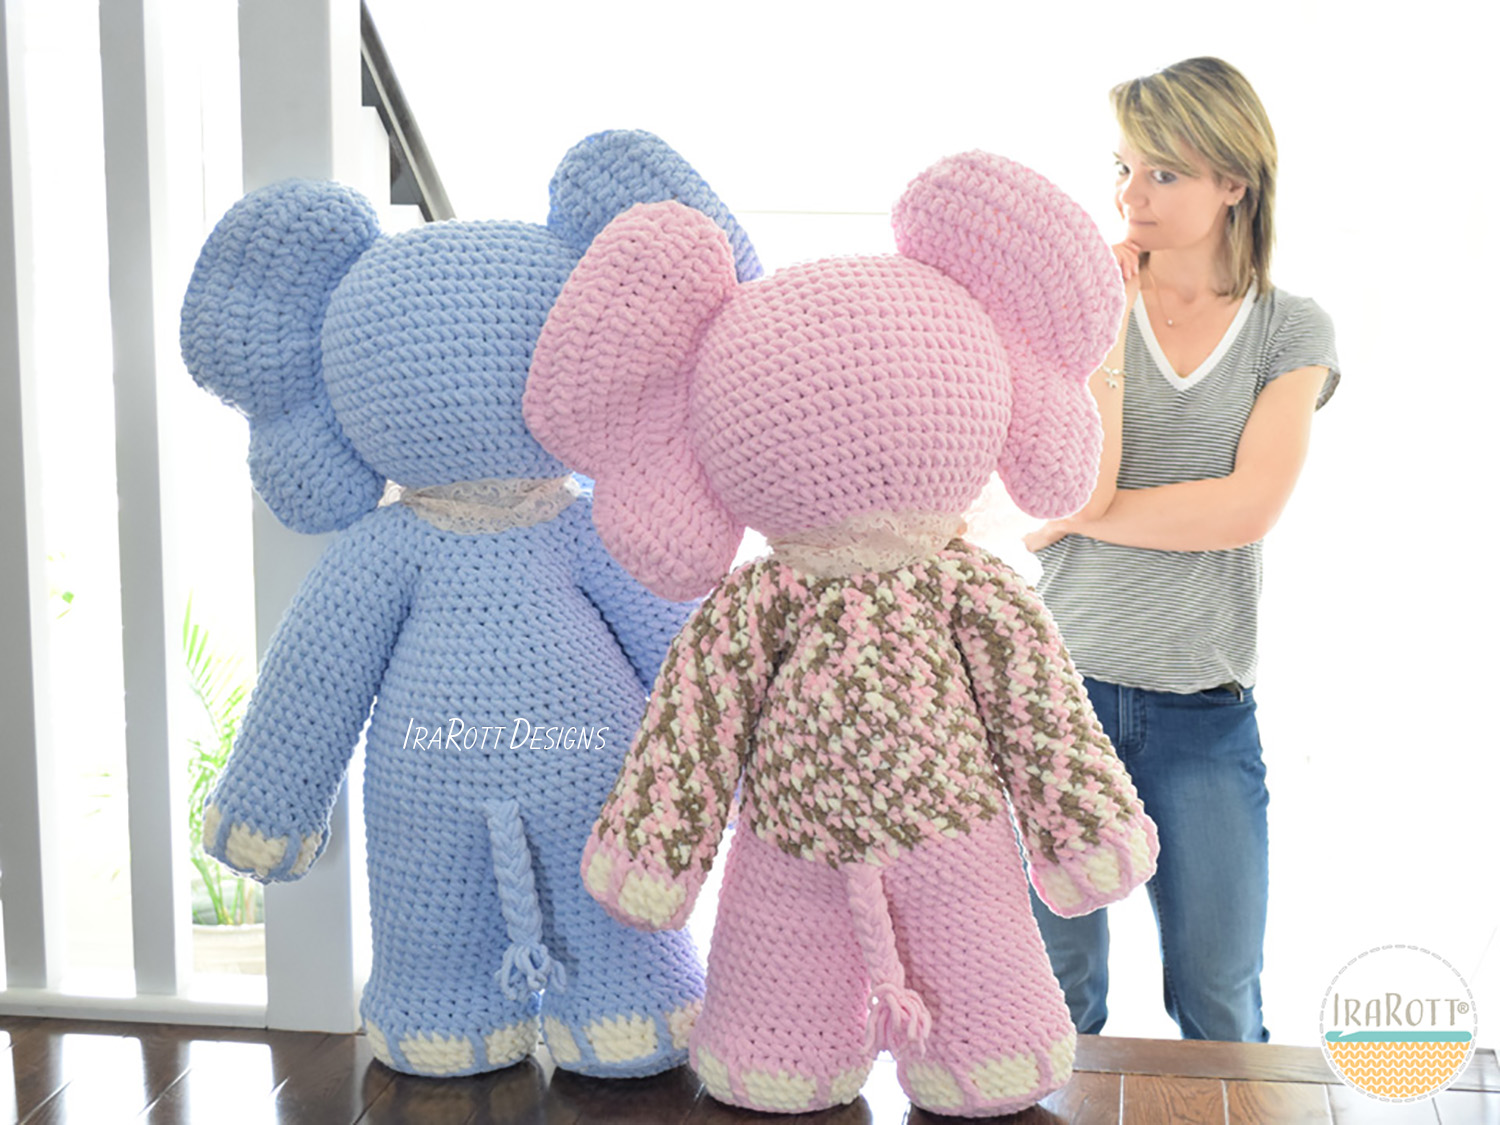 Amigurumi patterns go BIG (+ free pattern!) - Stitch This! The ... | 1125x1500